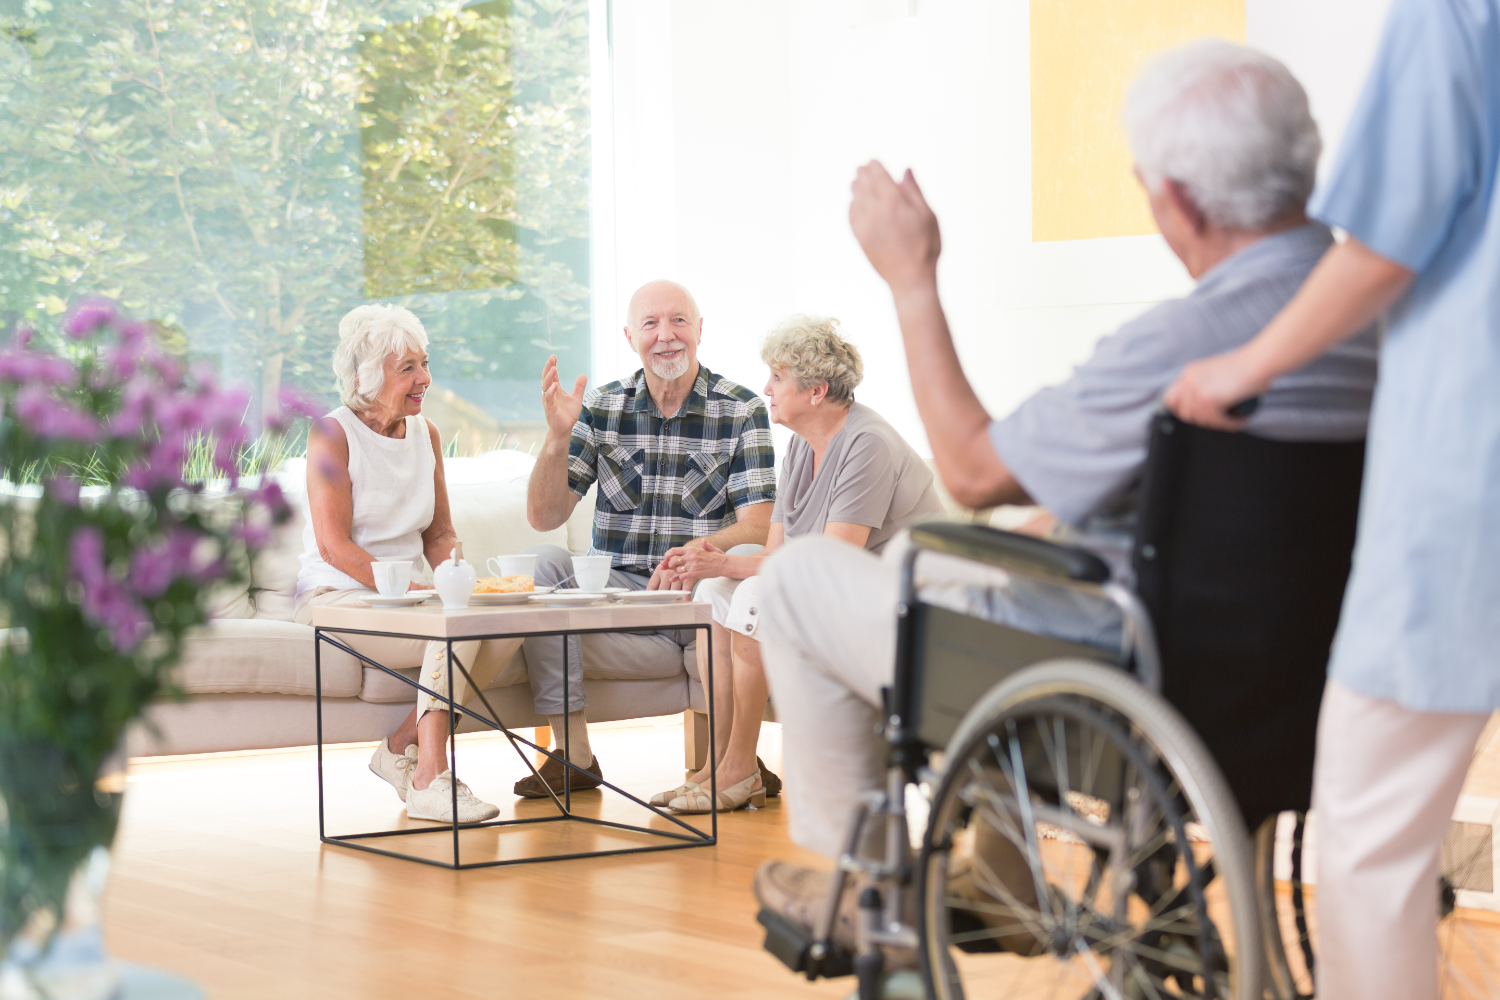 What Are the Pros and Cons of Assisted Living?